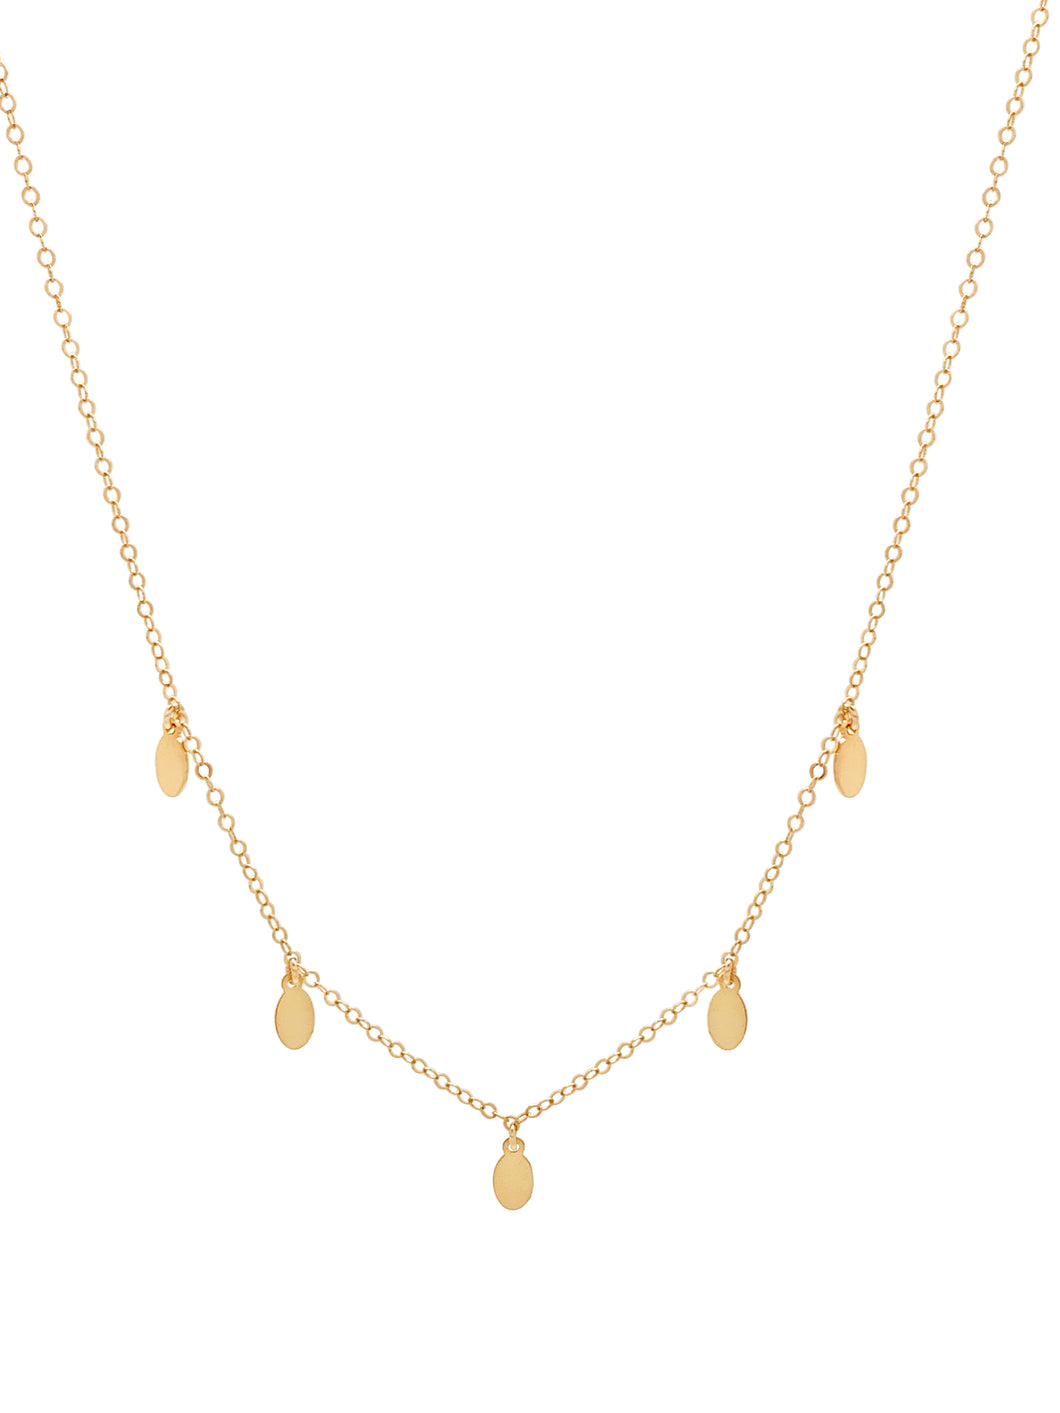 The Multi Drop Necklace - Teardrops